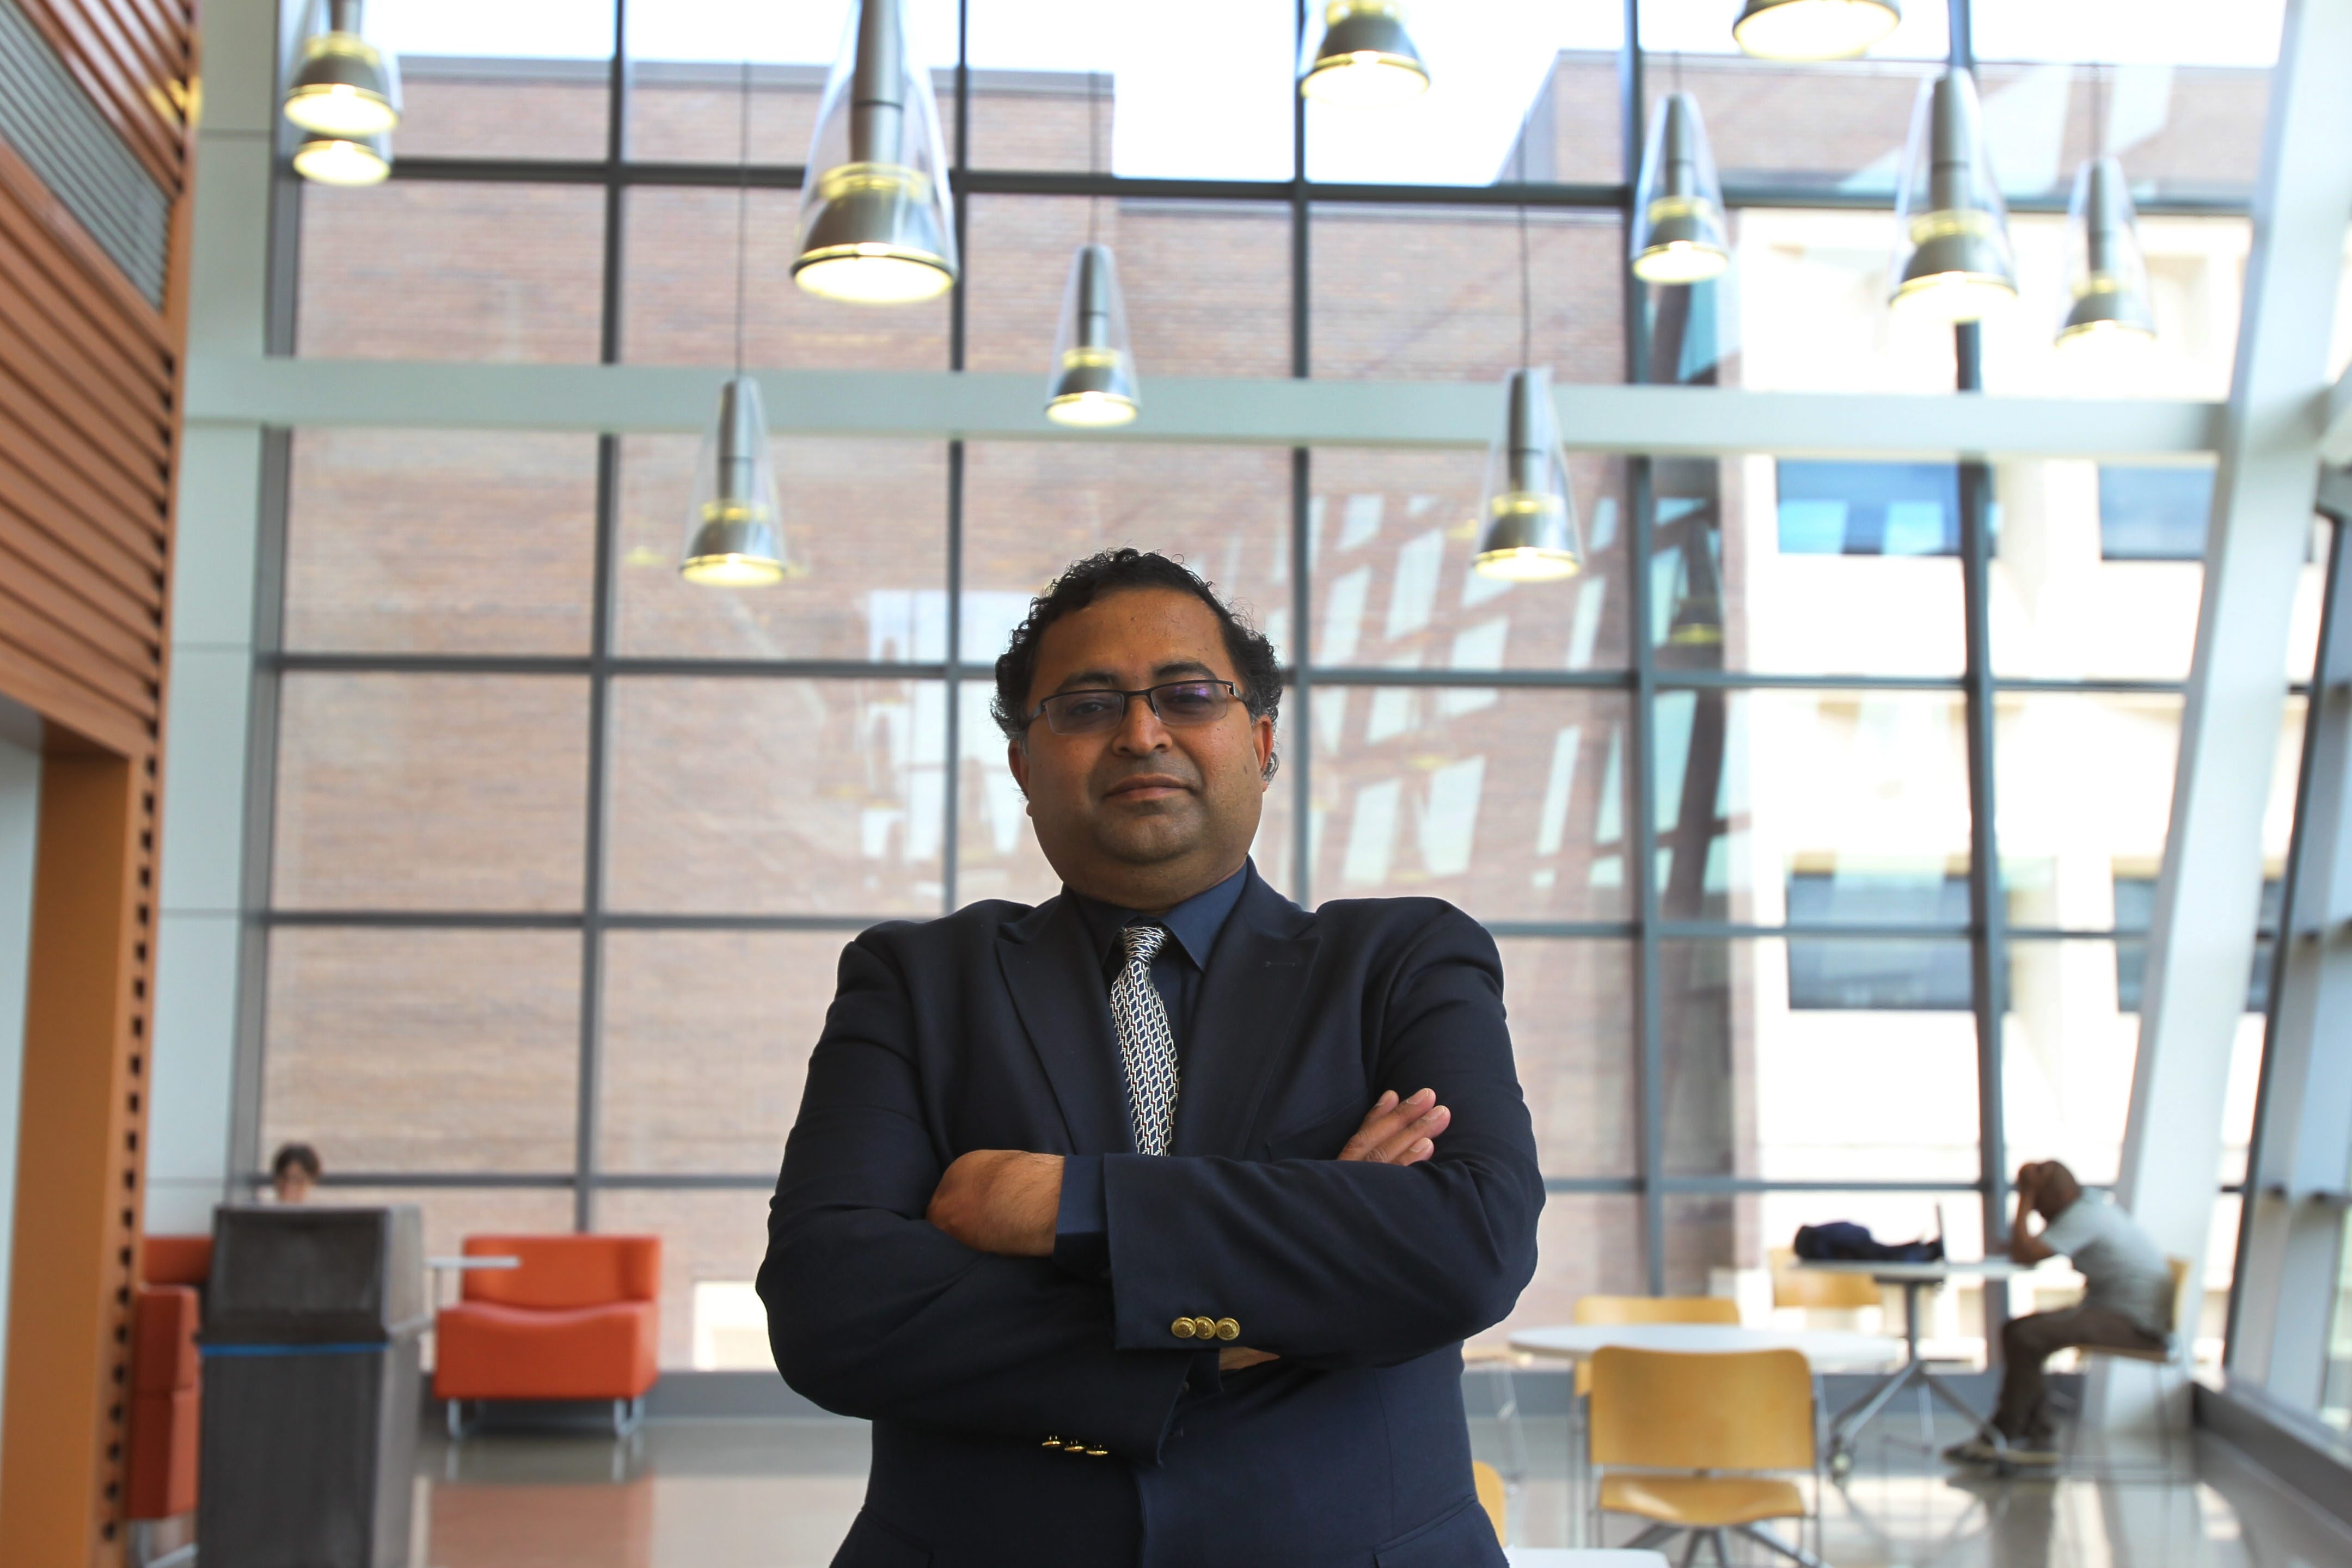 UB engineering professor Venkat Krovi, who helped attract the convention, hopes some engineers stay.